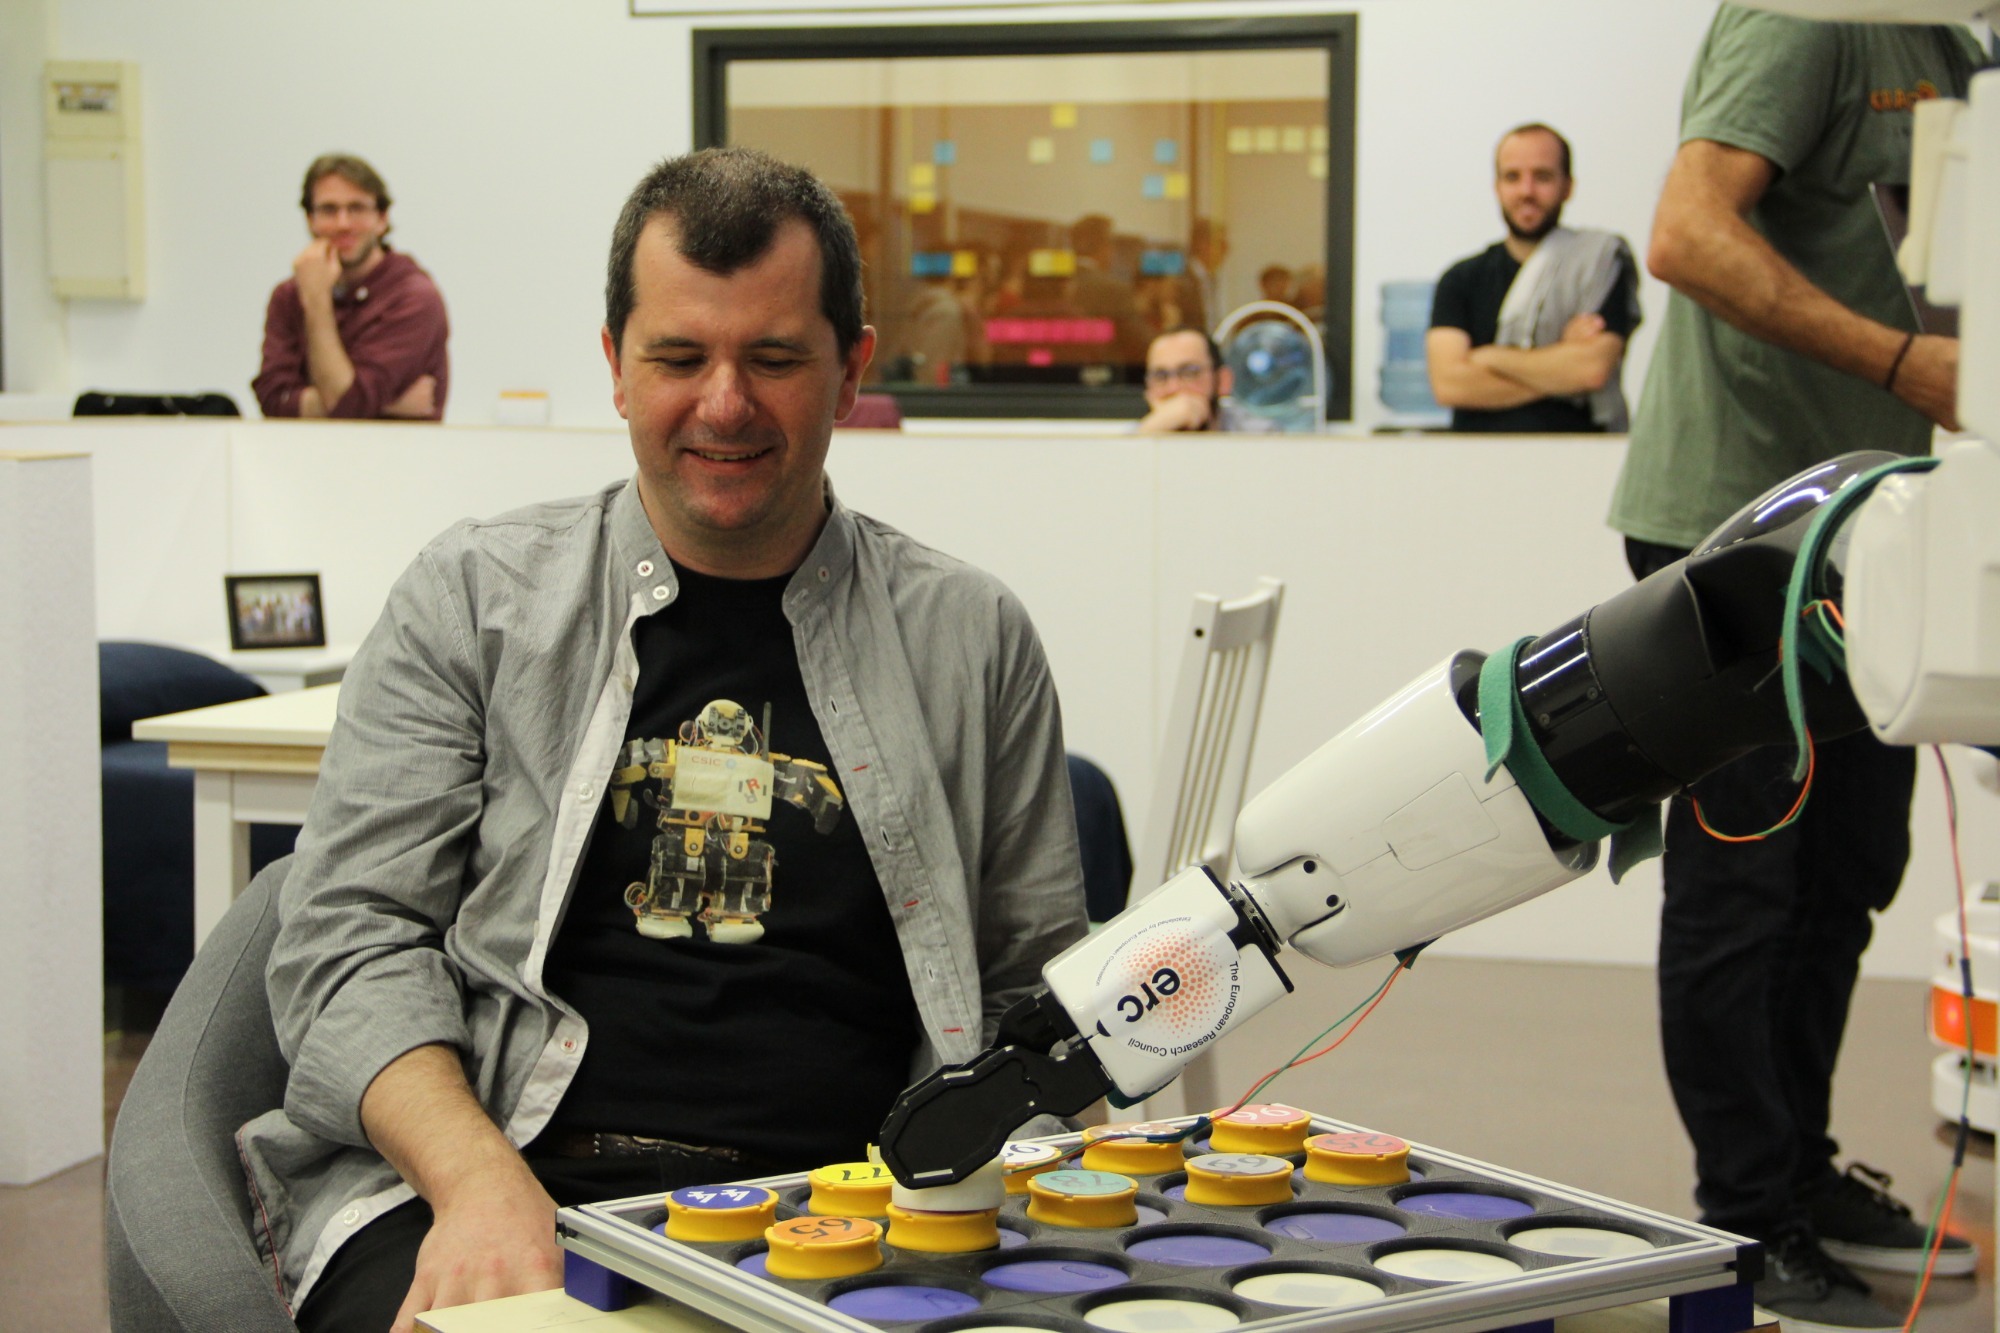 Guillem Alenyà, taking part in the Socrates project on social robotics